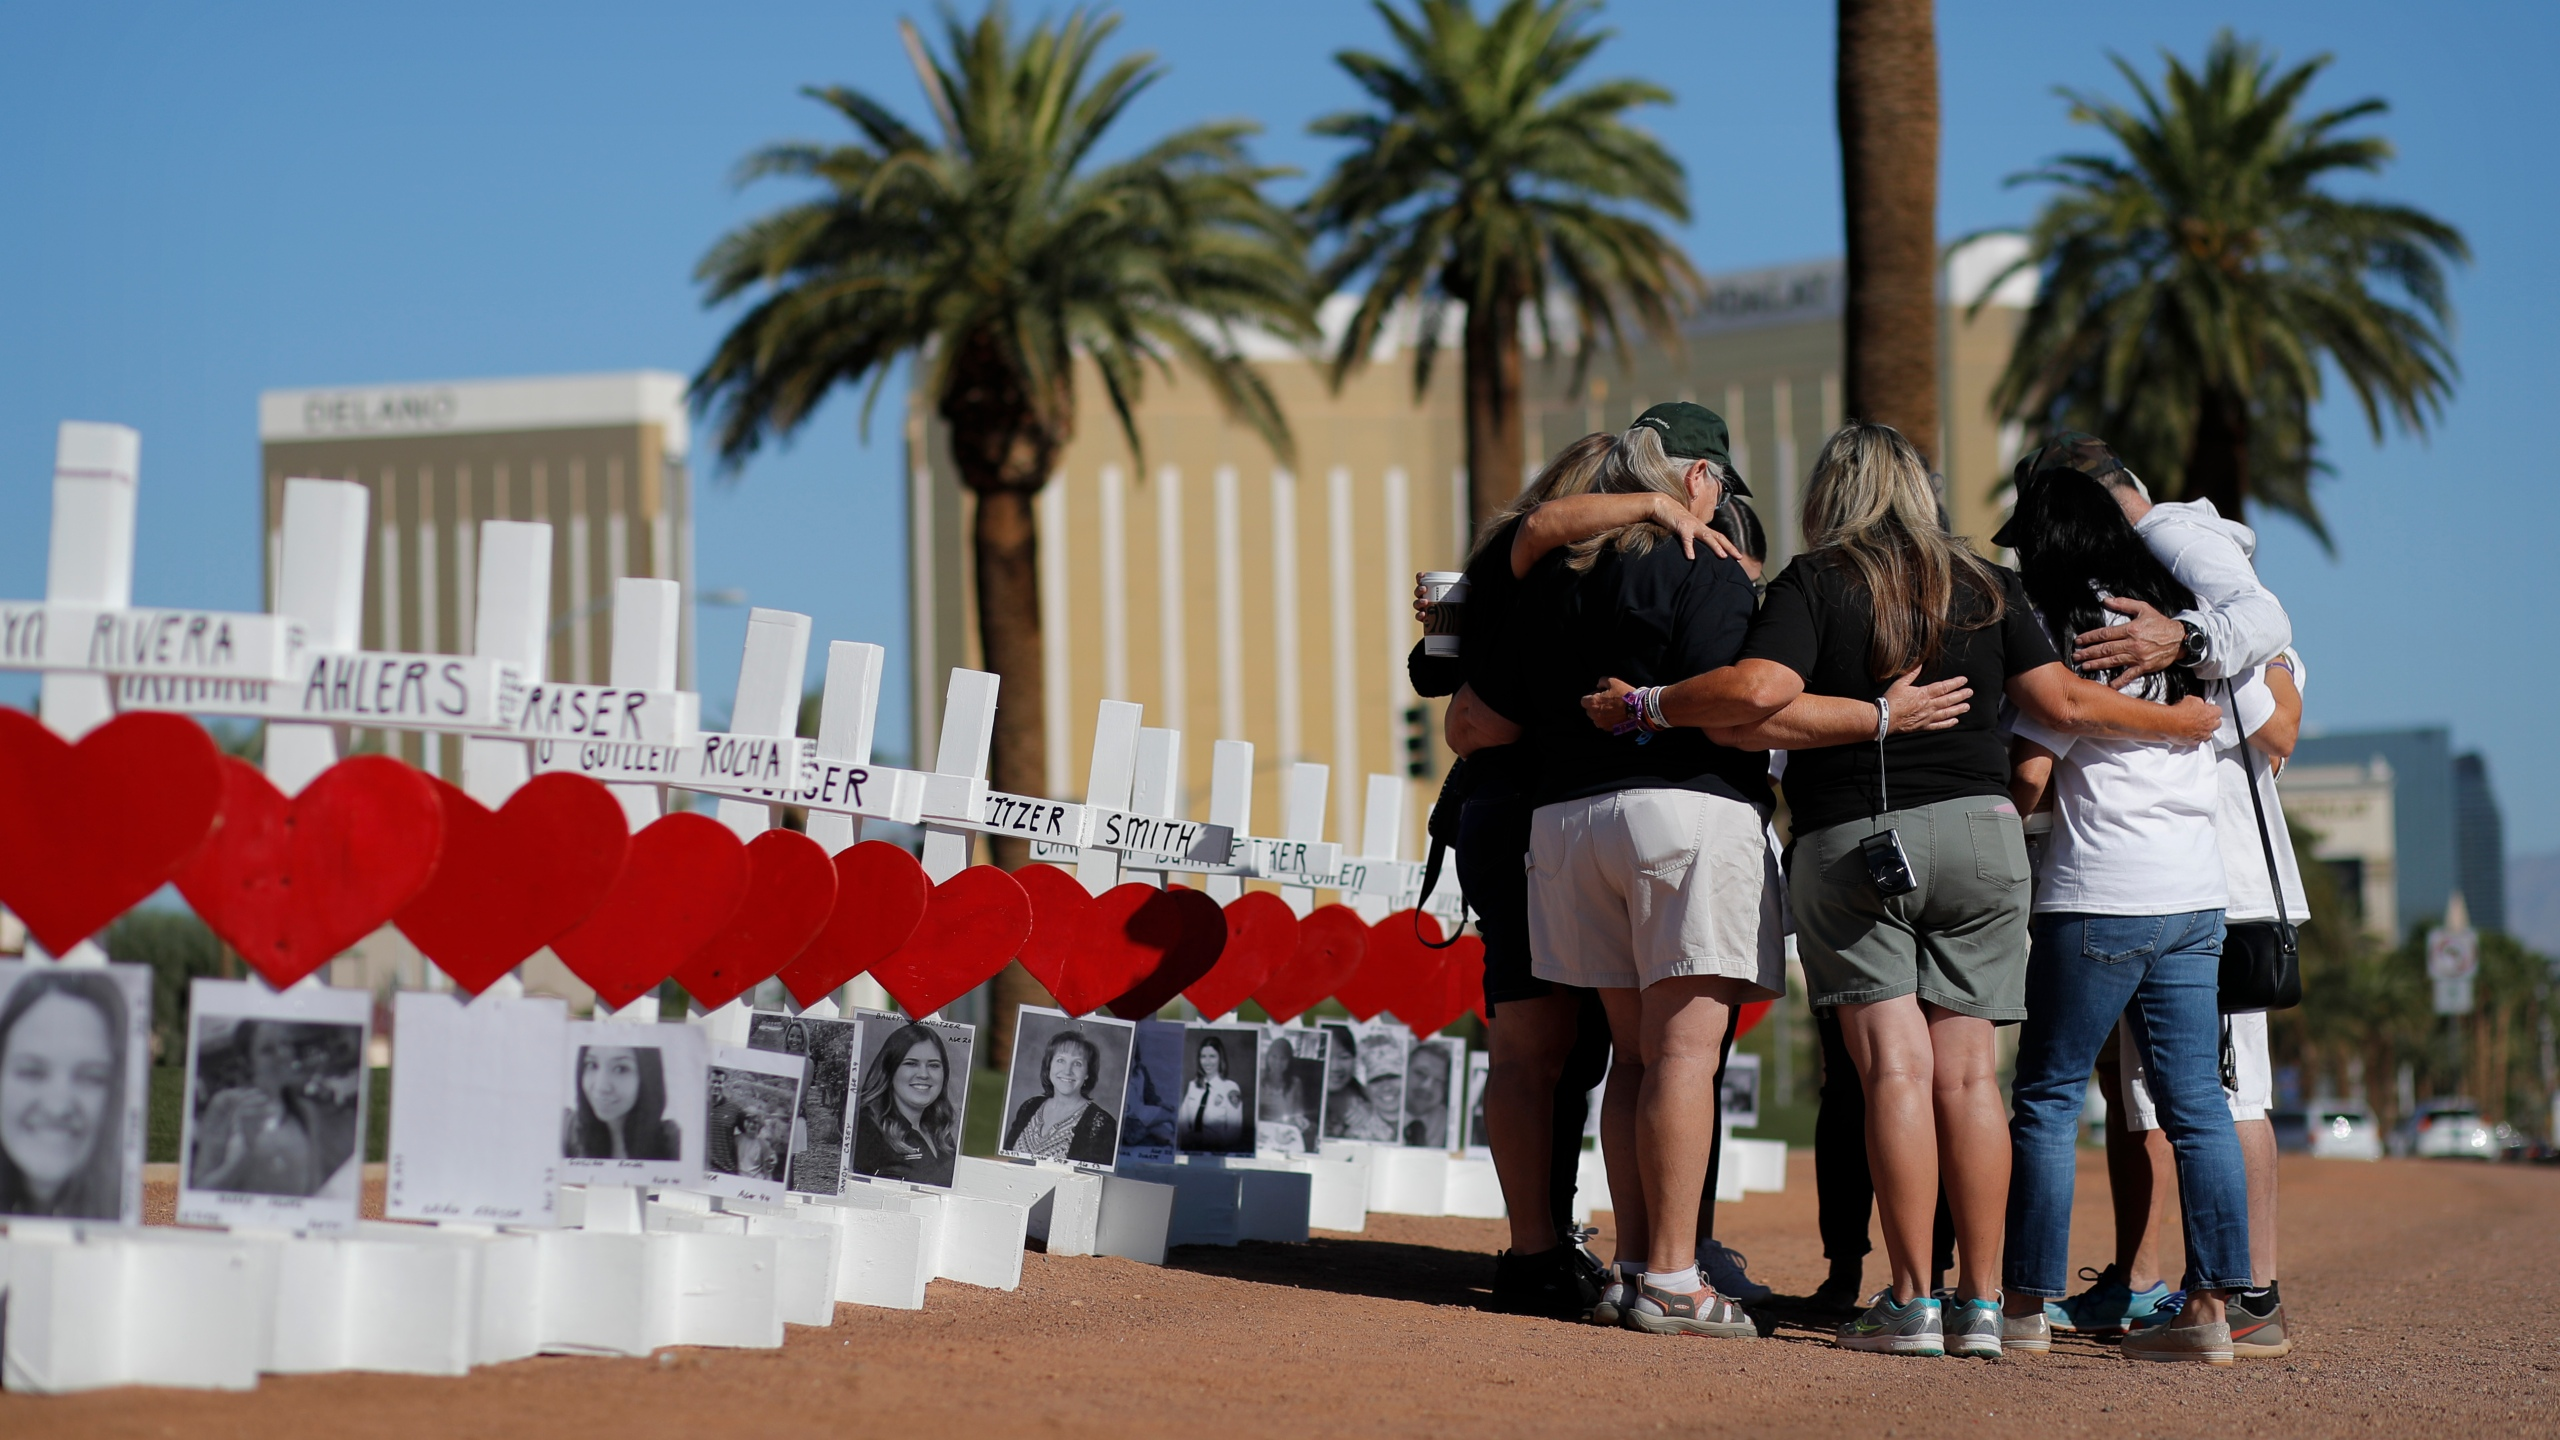 People pray at a makeshift memorial for shooting victims in Las Vegas on Oct. 1, 2019, the anniversary of the mass shooting two years earlier. (John Locher / Associated Press)